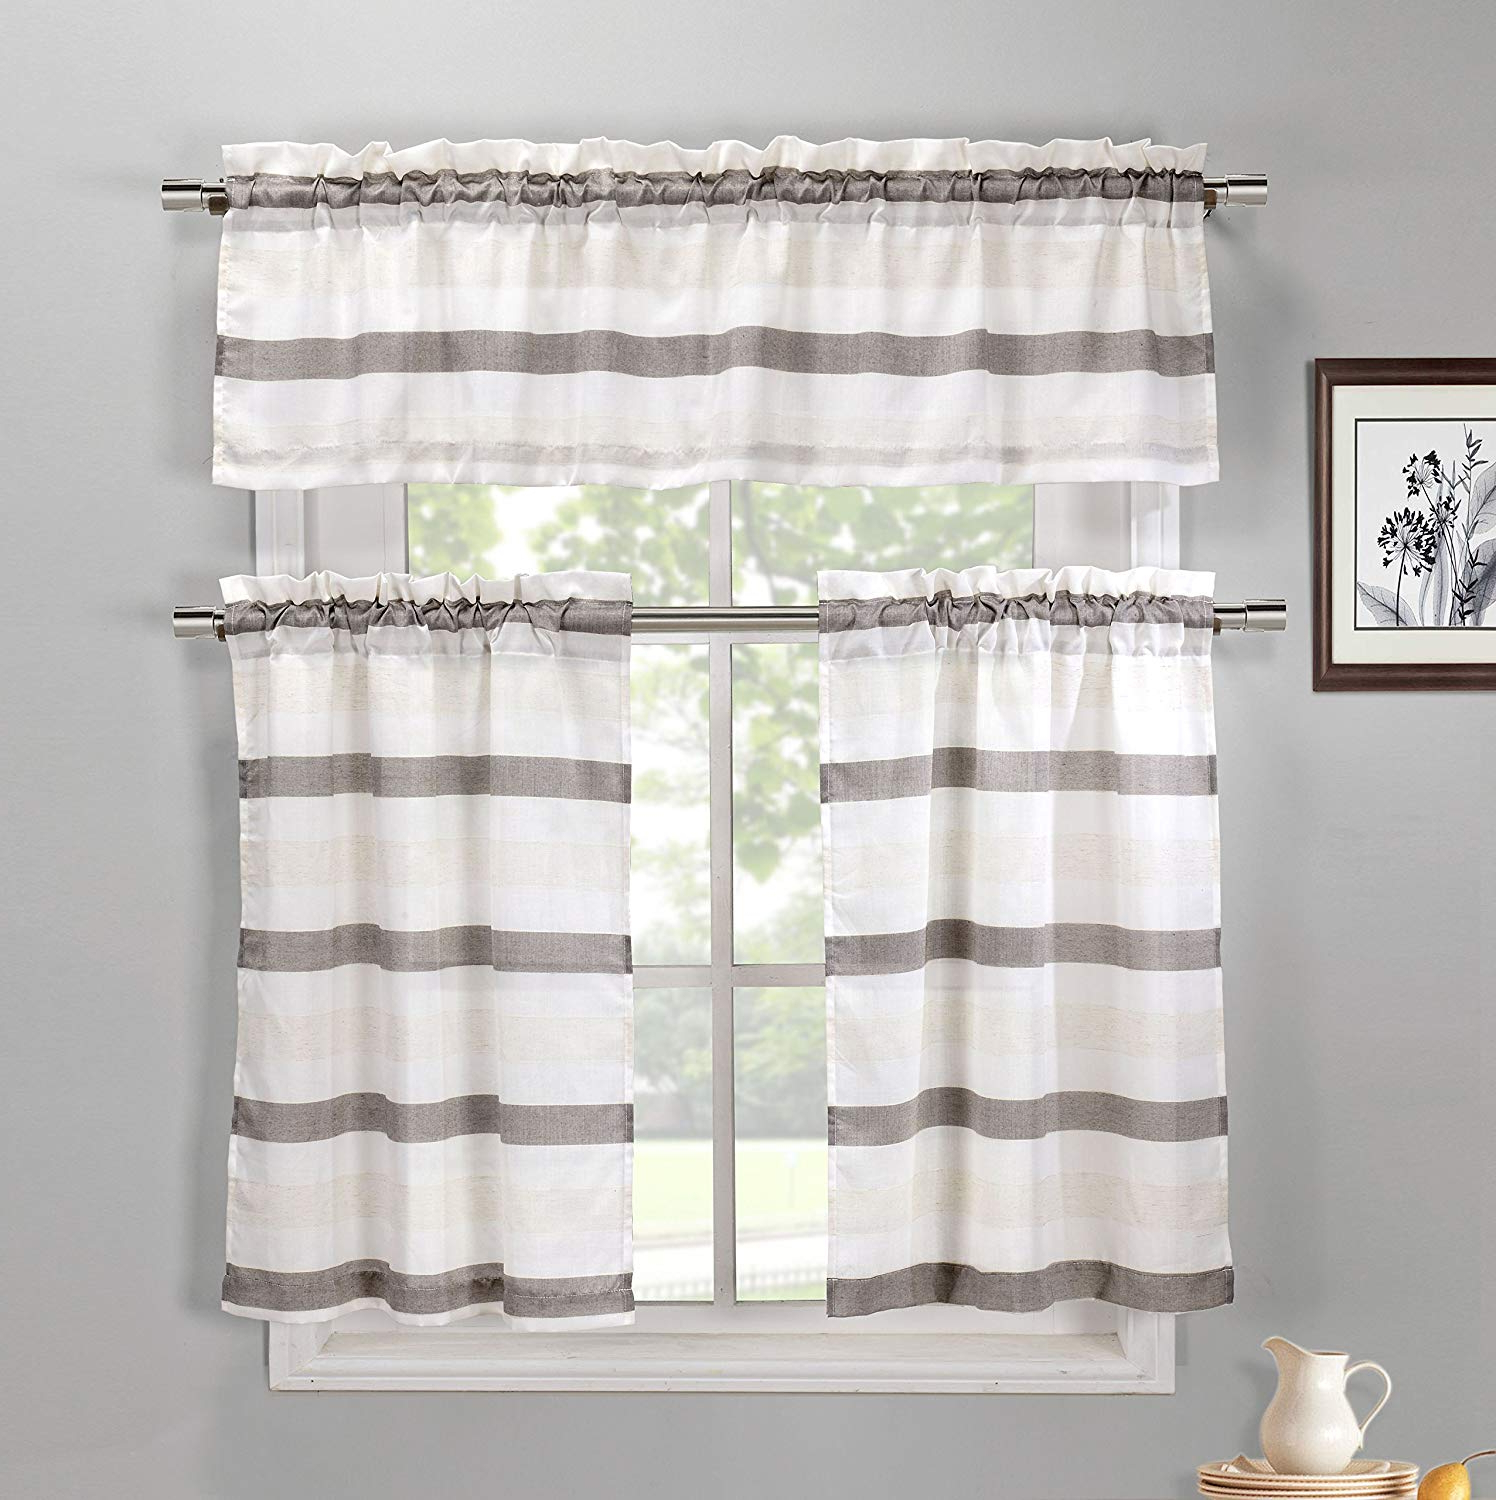 Twill 3 Piece Kitchen Curtain Tier Sets Throughout Newest Taupe, Ivory And Beige 3 Piece Kitchen Window Curtain Set: Natural Linen Blend, 1 Valance, 2 Tiers (View 5 of 20)